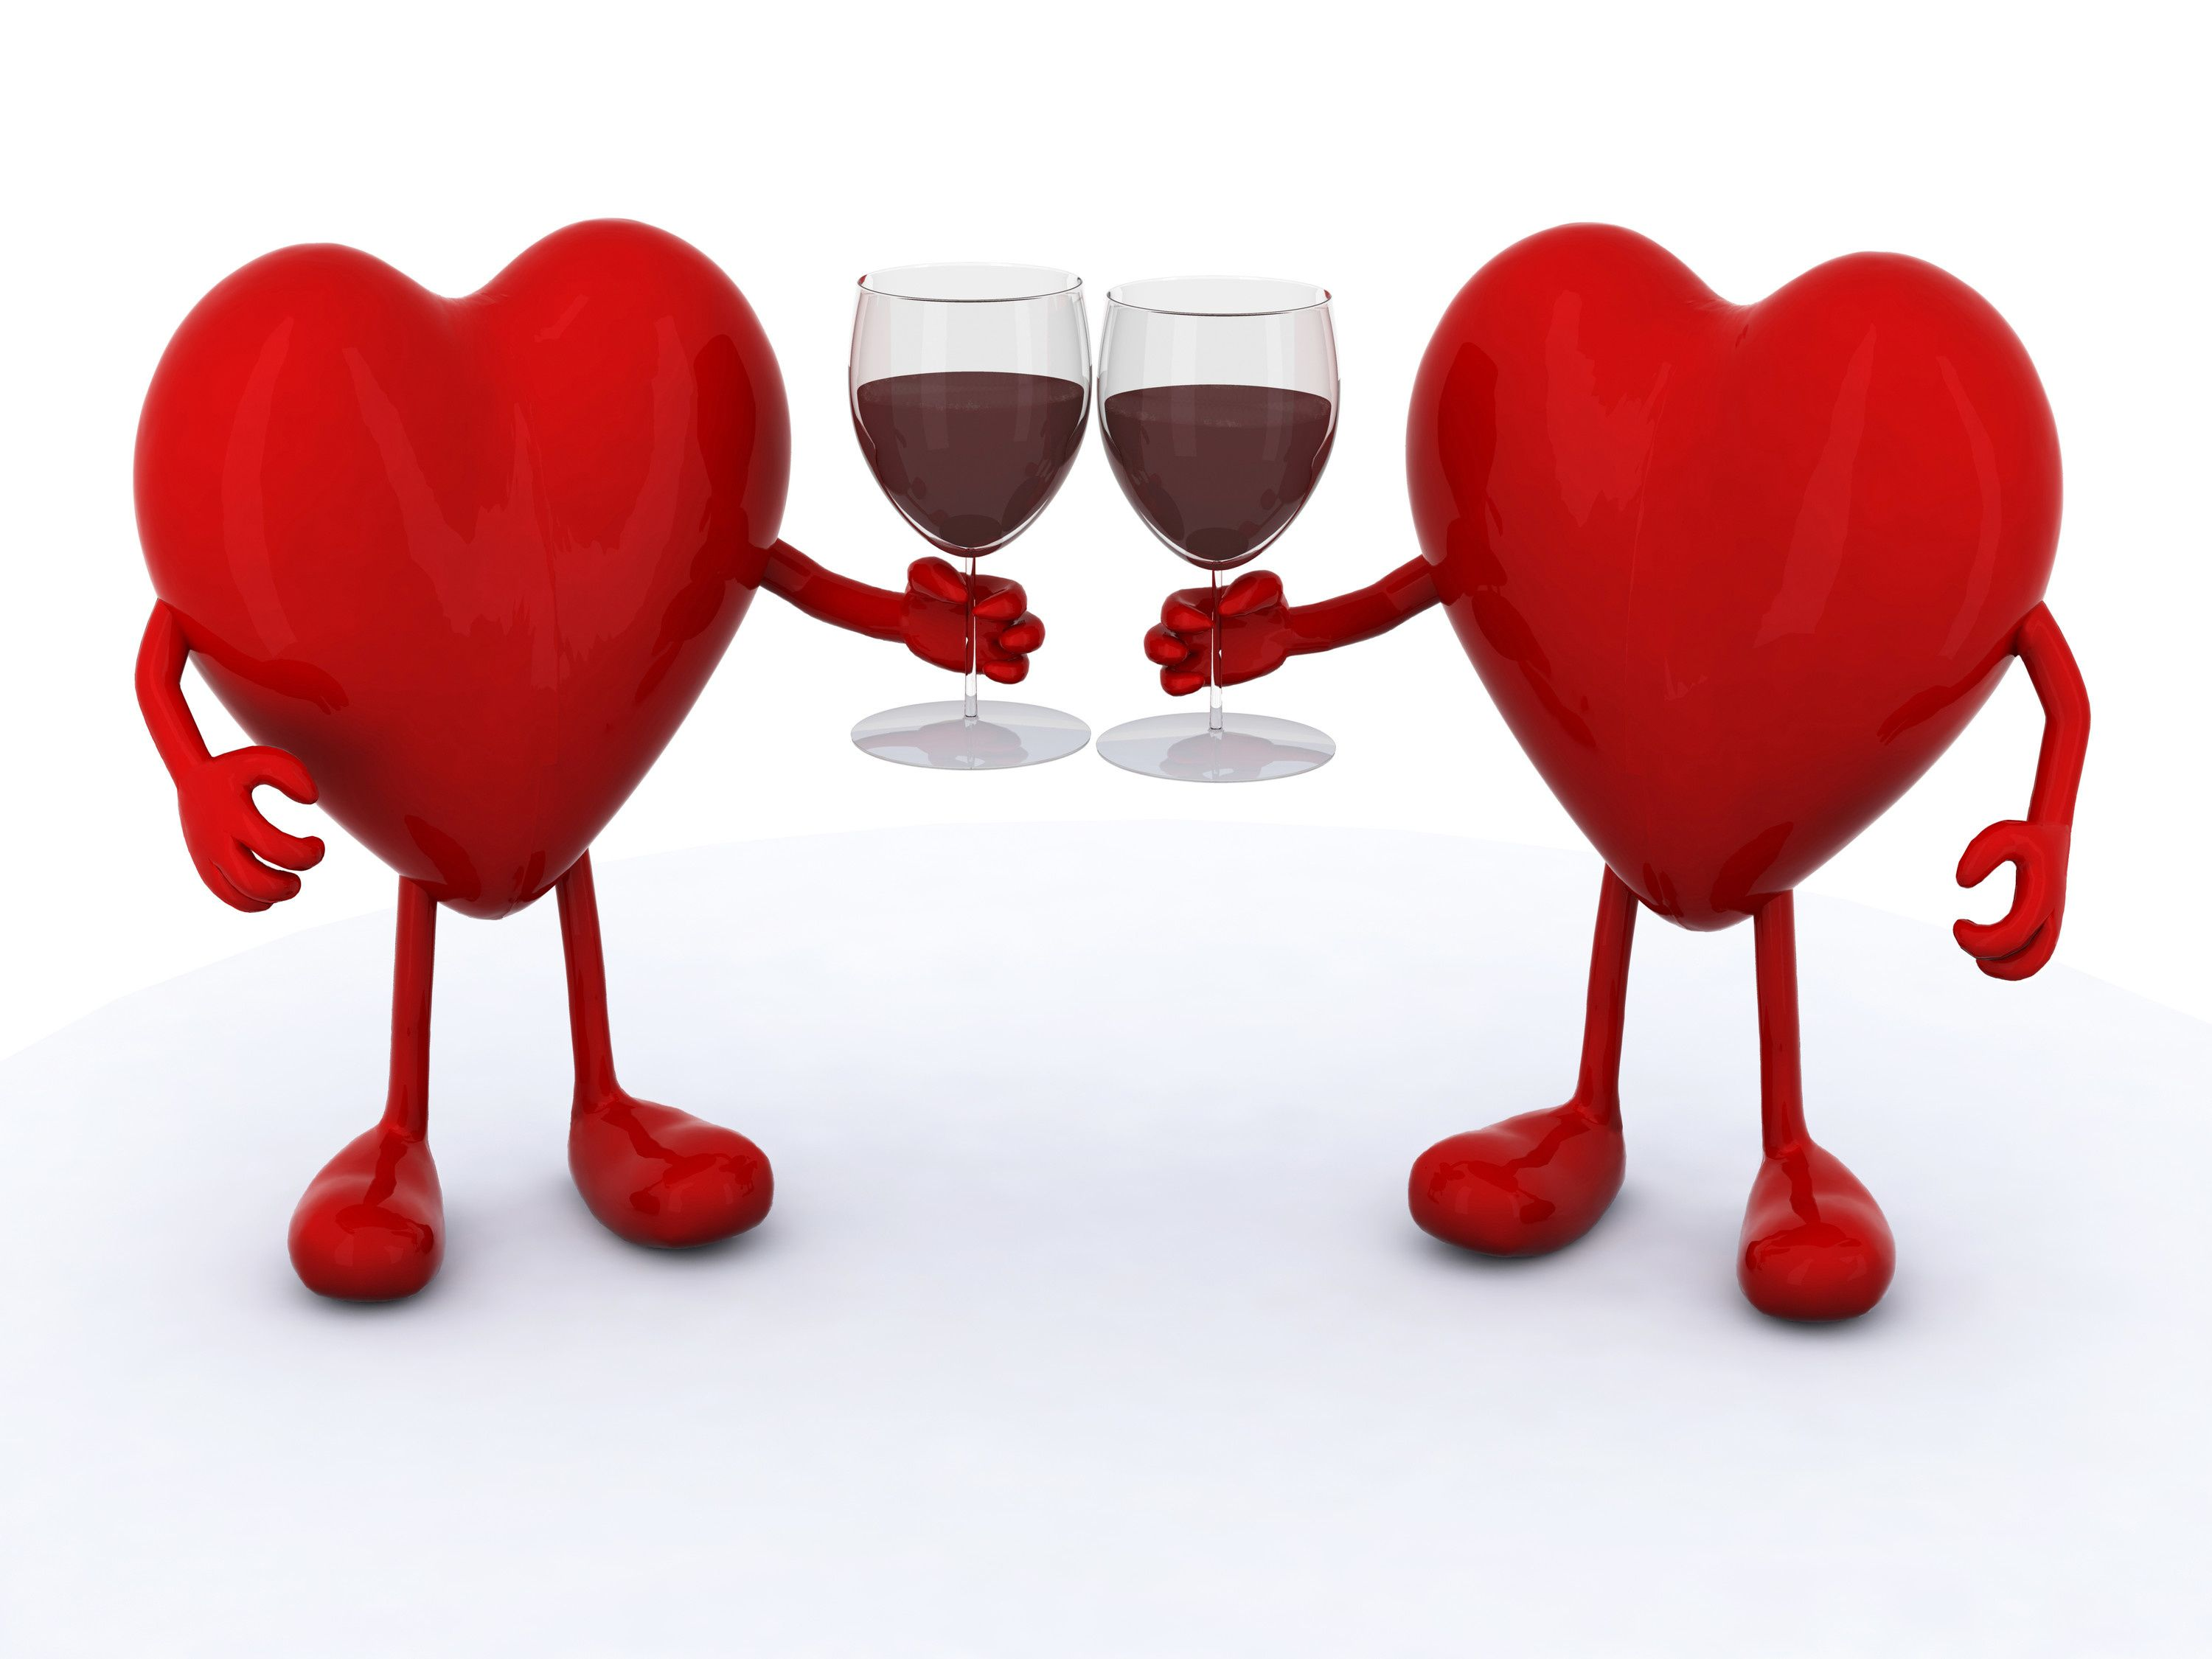 Heart Healthy Benefits Of Red Wine Consumption Red Wine Benefits Wine Red Wine